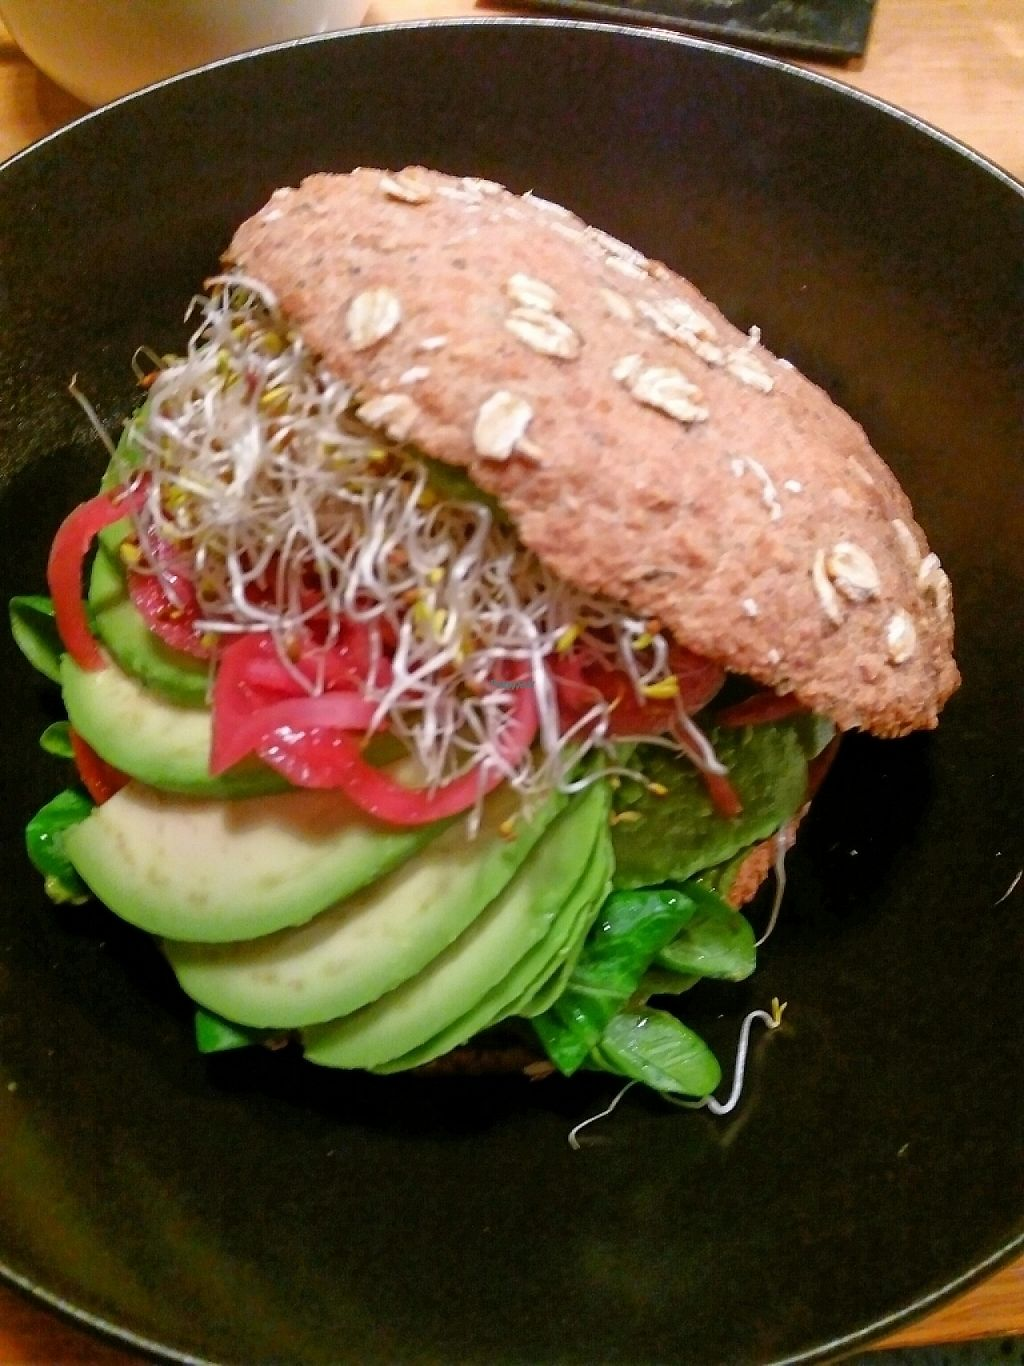 """Photo of simpleRAW  by <a href=""""/members/profile/Smoelfine"""">Smoelfine</a> <br/>avocado burger <br/> January 11, 2017  - <a href='/contact/abuse/image/59290/210711'>Report</a>"""